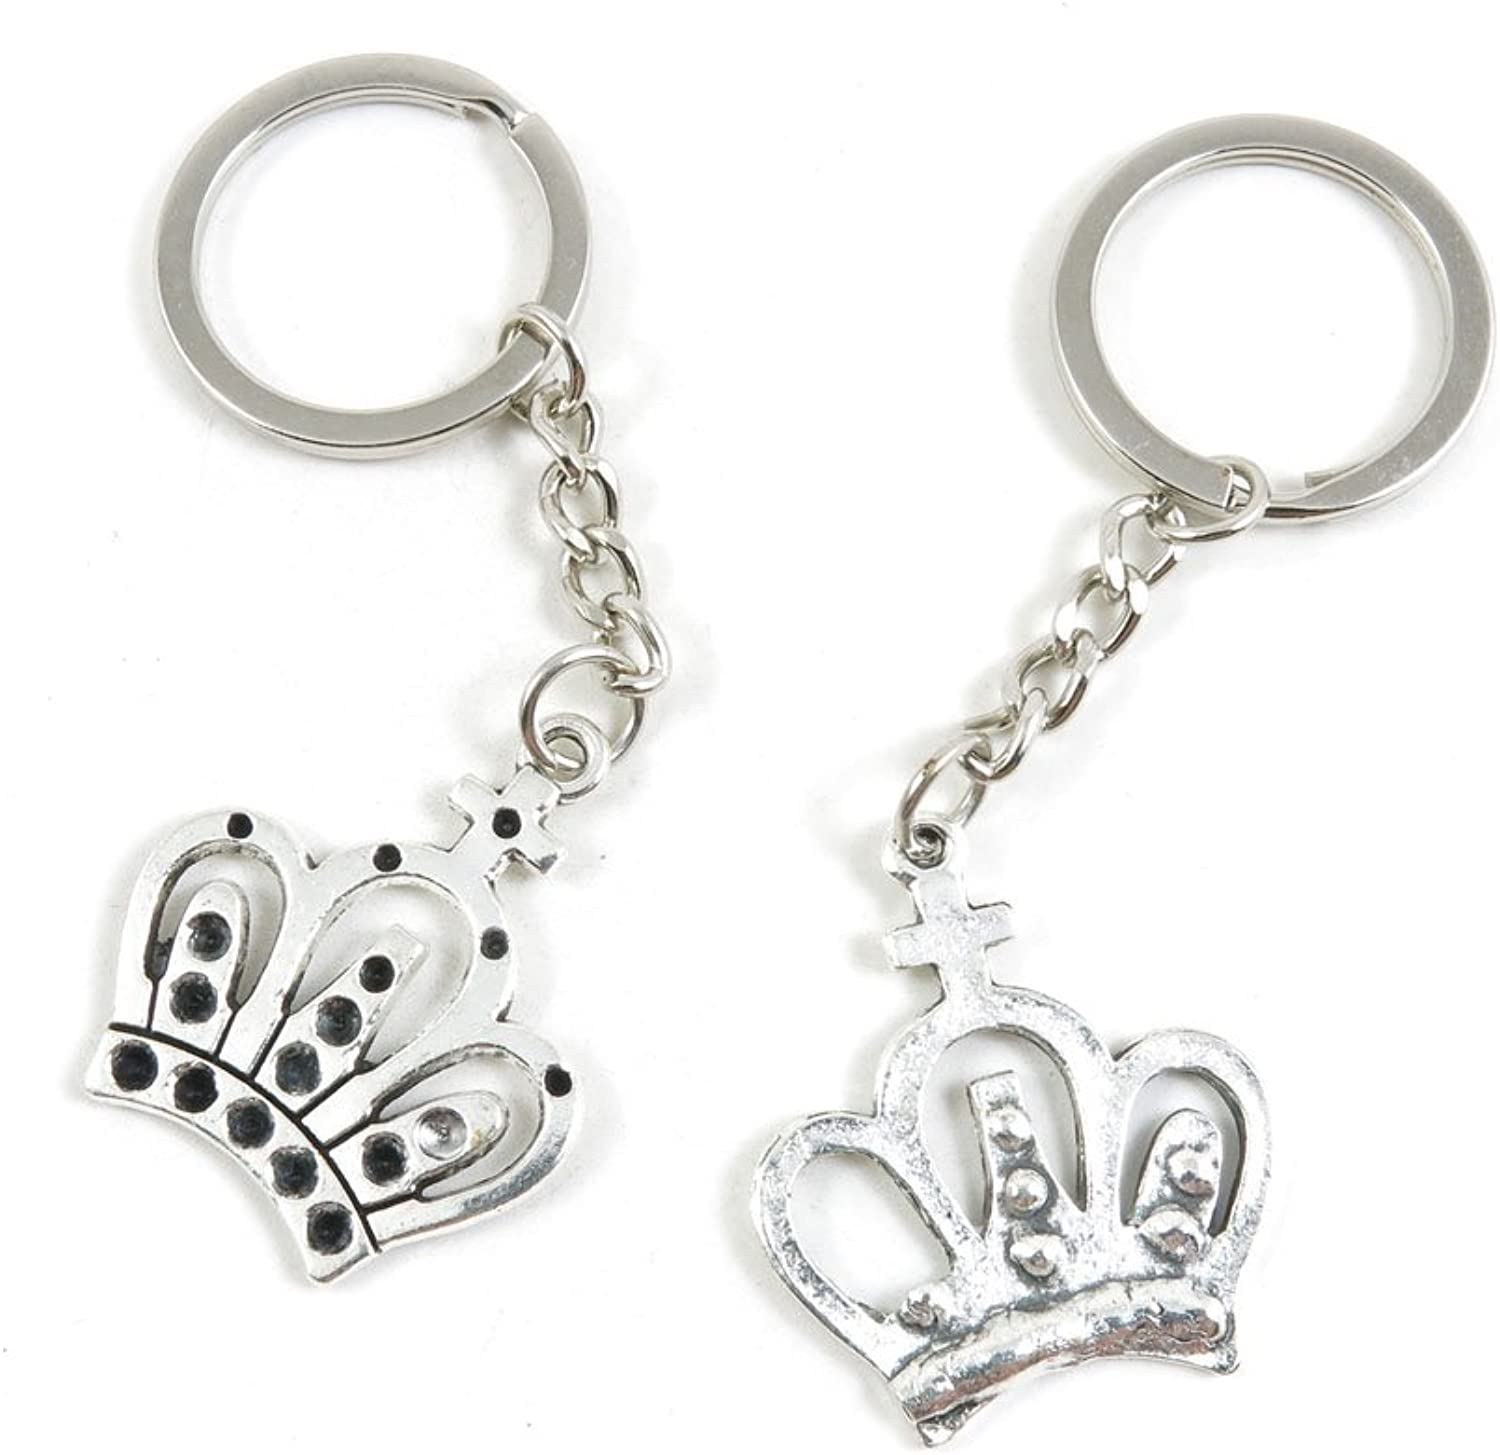 100 Pieces Keychain Keyring Door Car Key Chain Ring Tag Charms Bulk Supply Jewelry Making Clasp Findings F3HO7N Crown